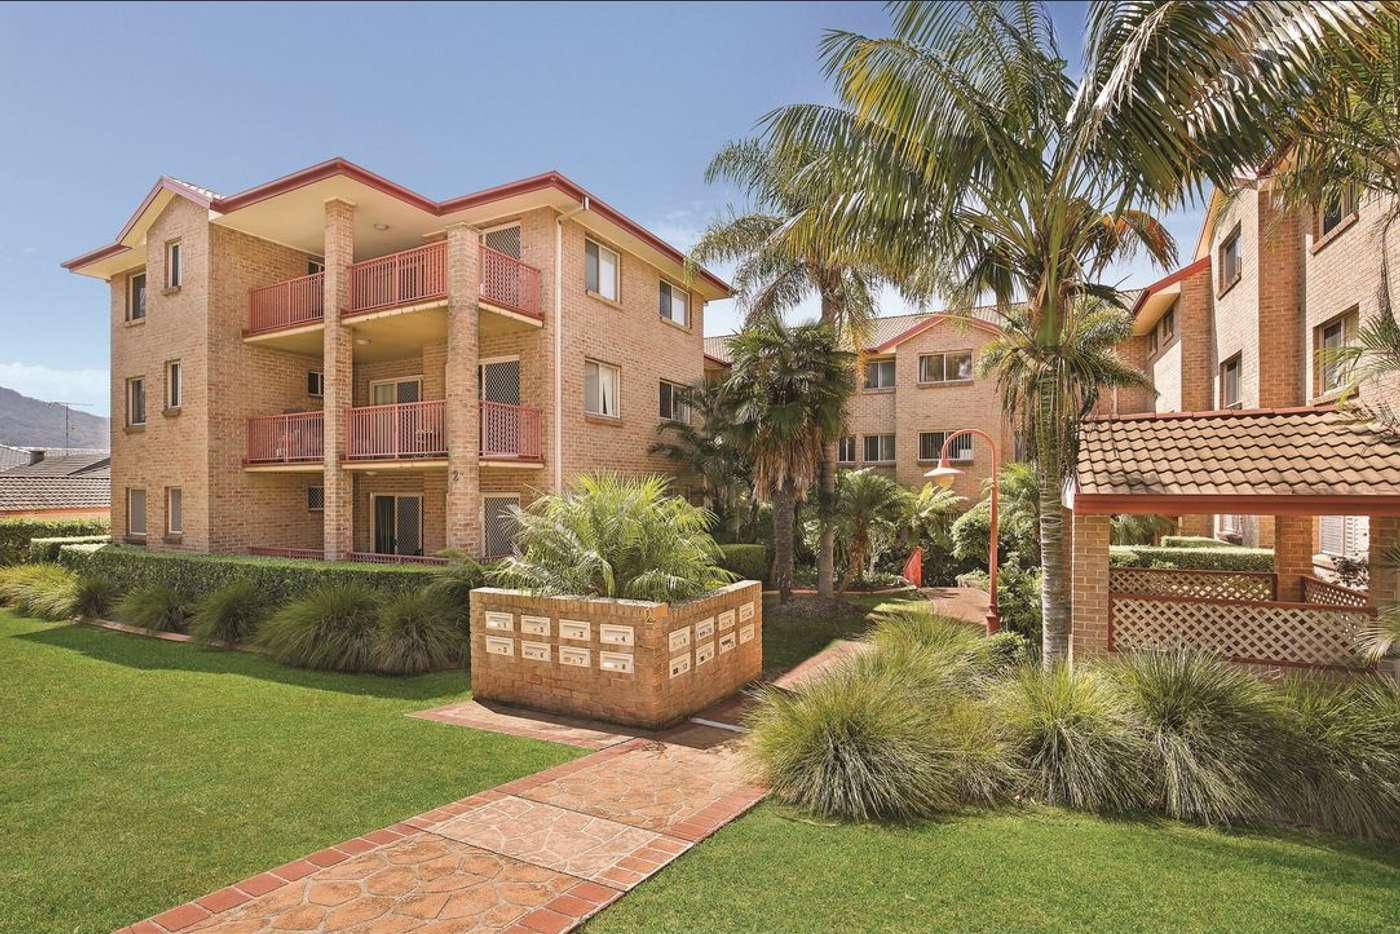 Main view of Homely unit listing, 15/2 Edward Street, Wollongong NSW 2500